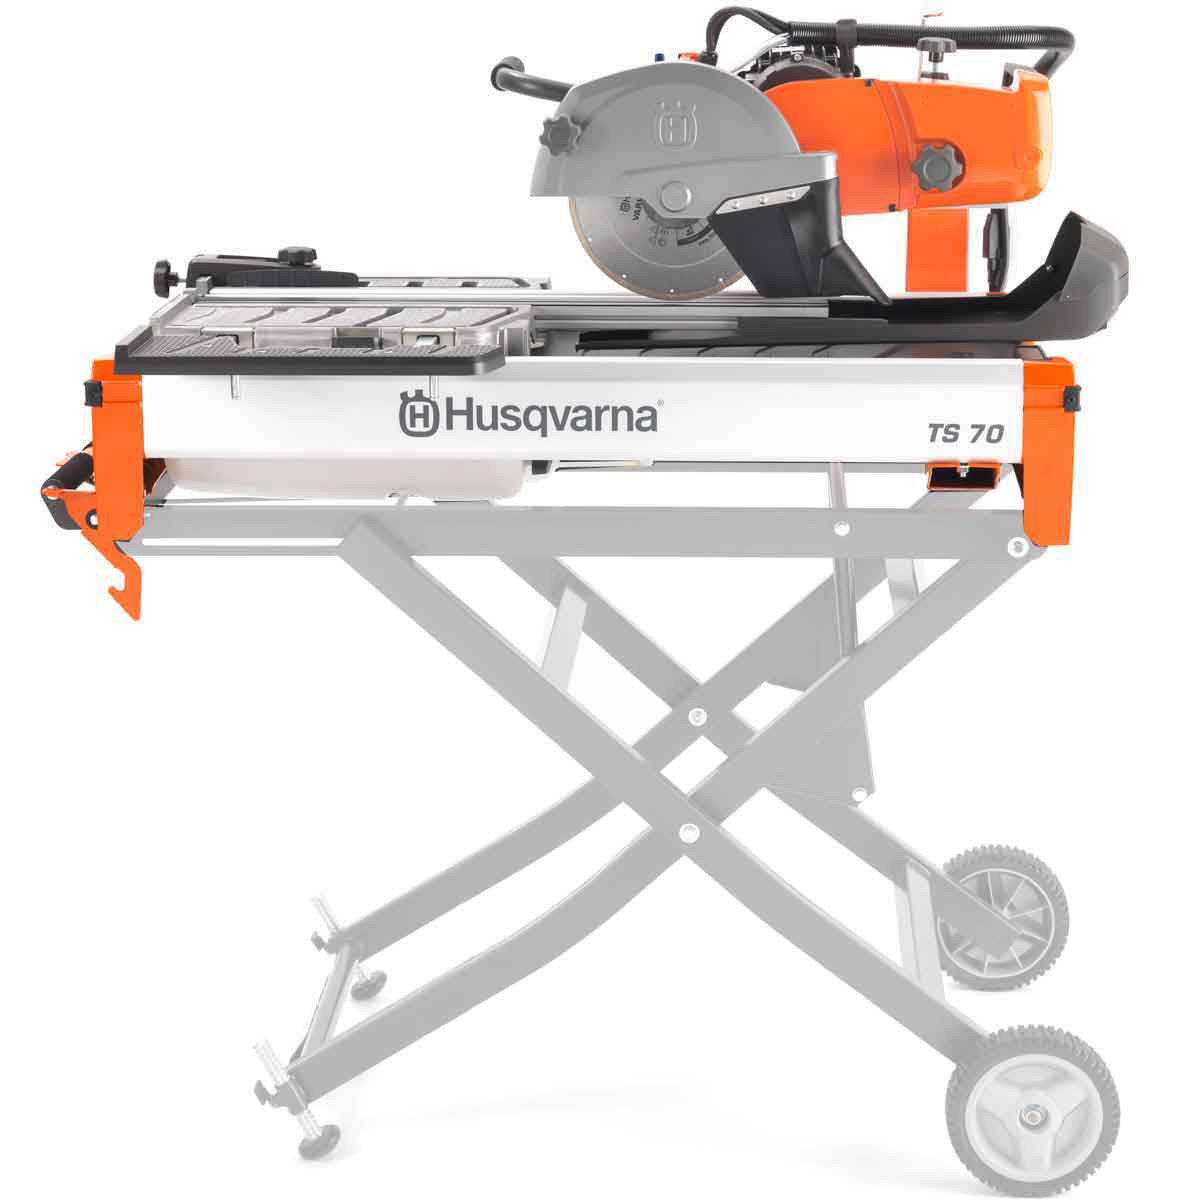 Husqvarna TS70 Tile Saw with optional rolling stand